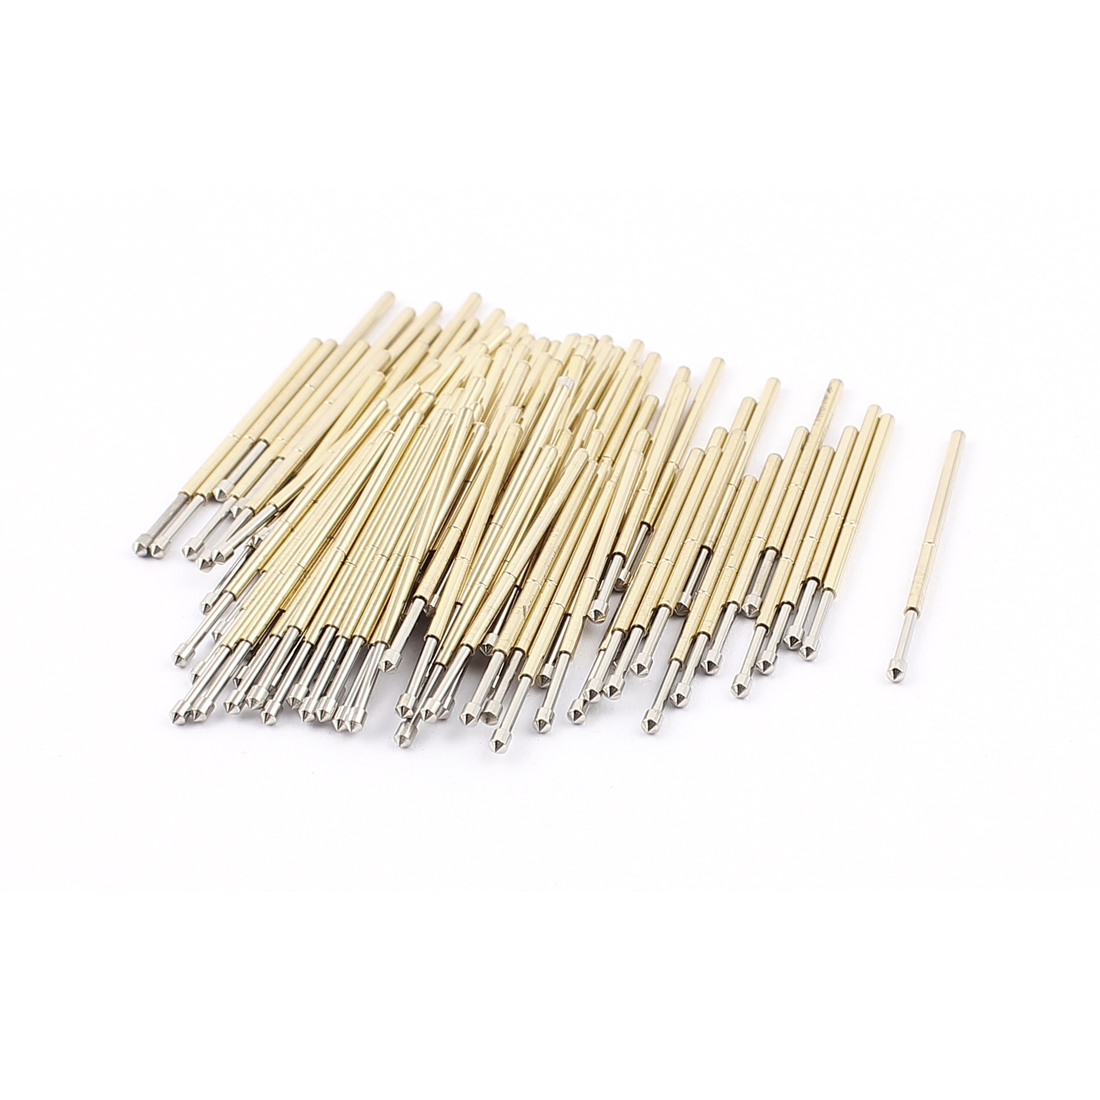 100Pcs P100E 1.5mm Dia 90 Degree Convex Tip 33mm Long Spring Testing Test Probe Pin Gold Tone